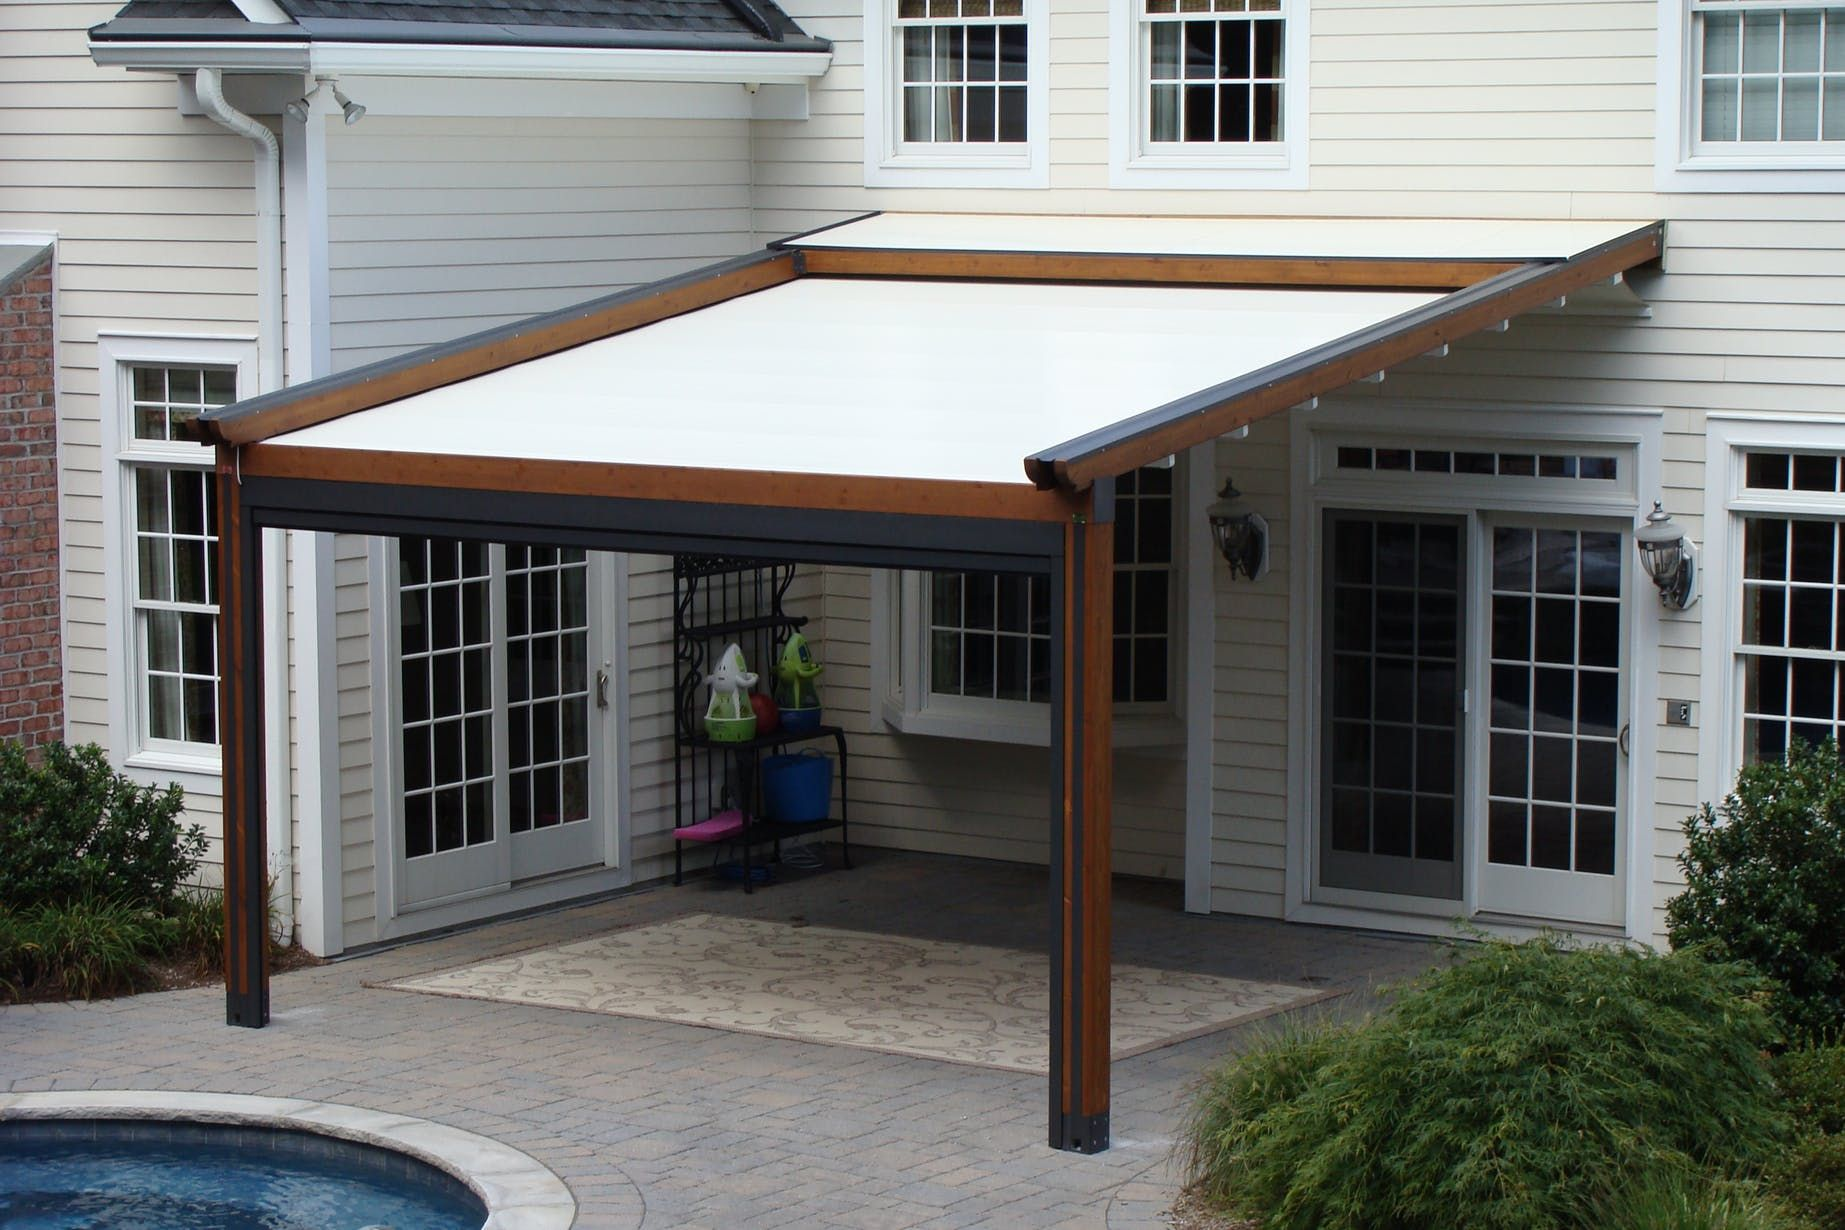 Private Residence Landscape, Pool And Patio Application, Northern NJ    Gennius L1 Model, Retractable Pergola Awning With Integrated Solar Shade |  Richard ...